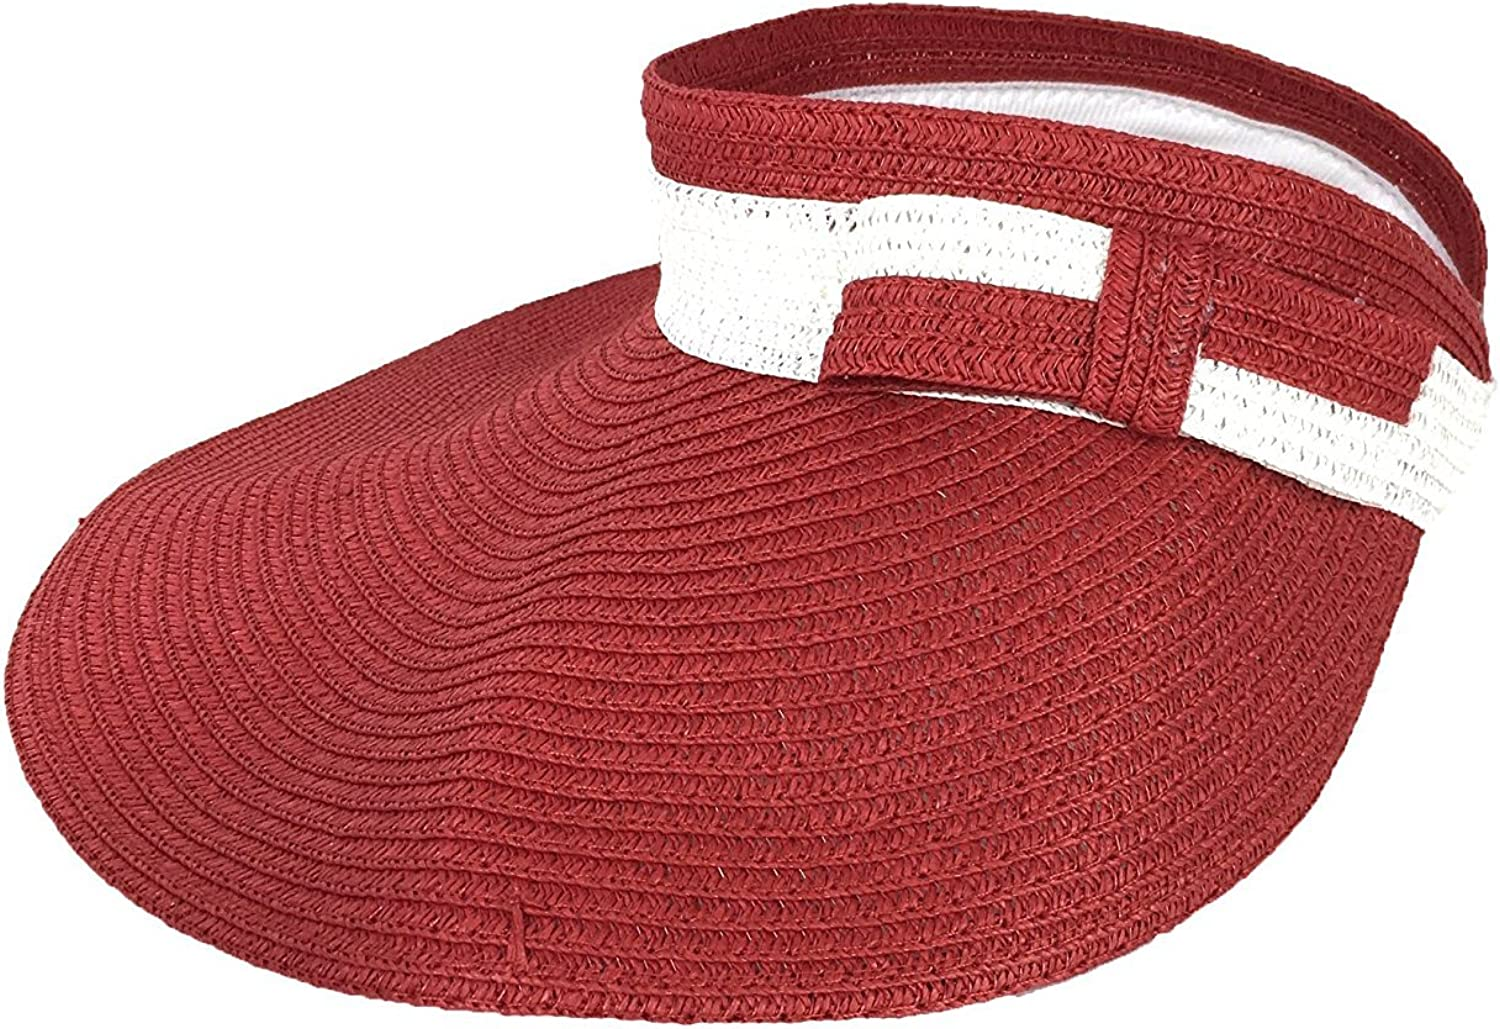 MAGID Women's Two-Tone Packable Wide Brim Straw Sun Visor (Red/White)